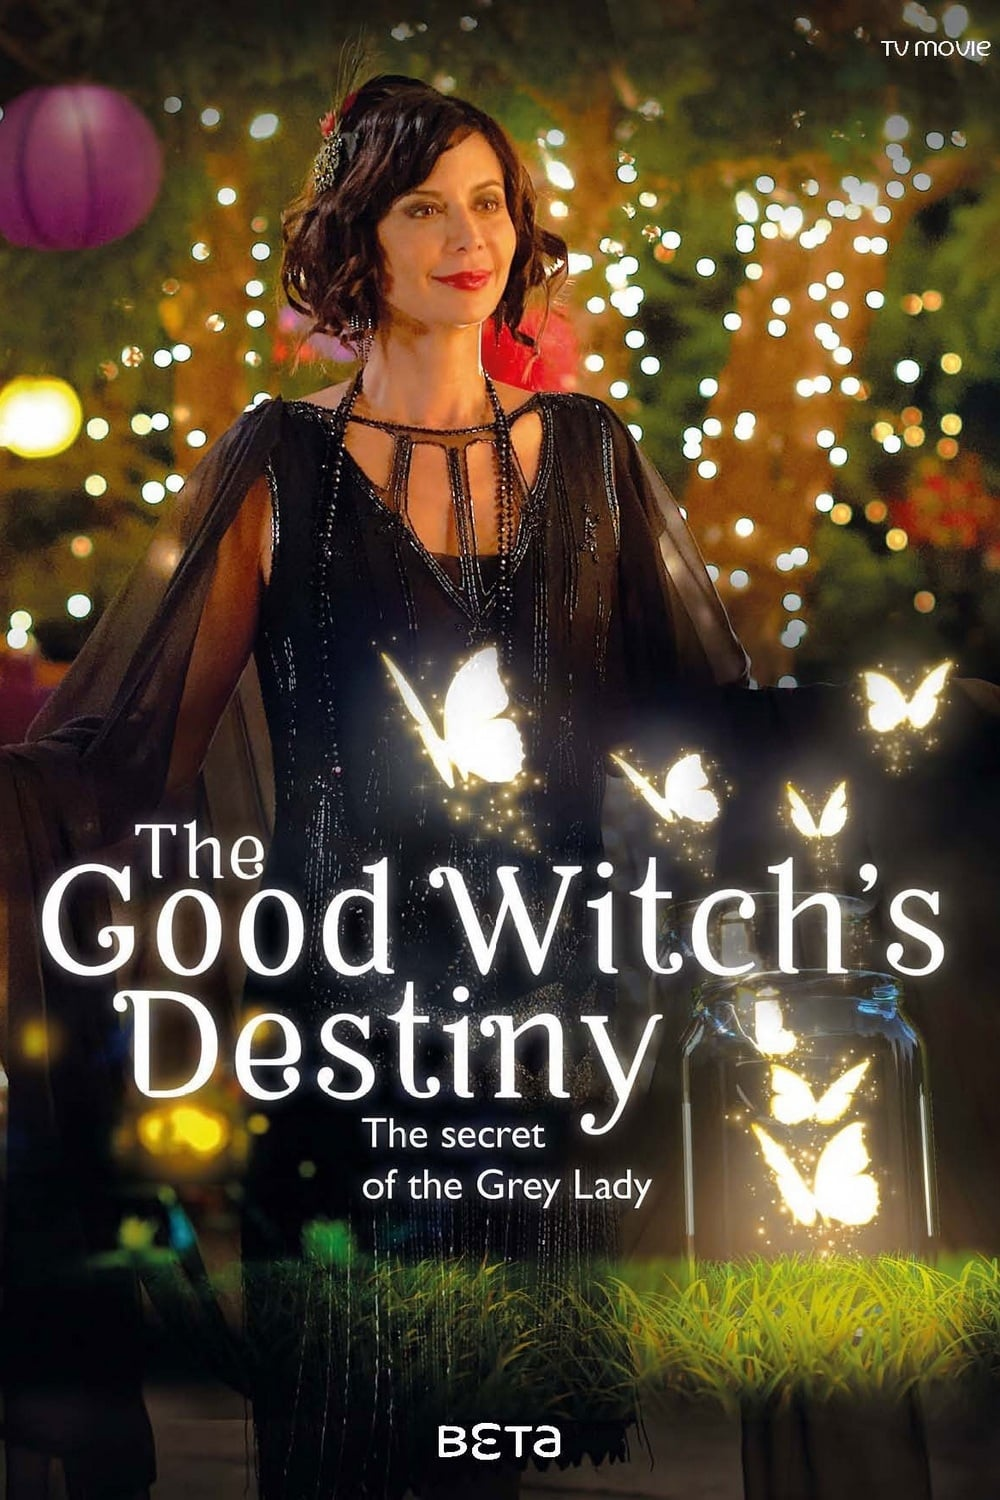 The good witch 39 s destiny 2013 the movie for The good witch garden